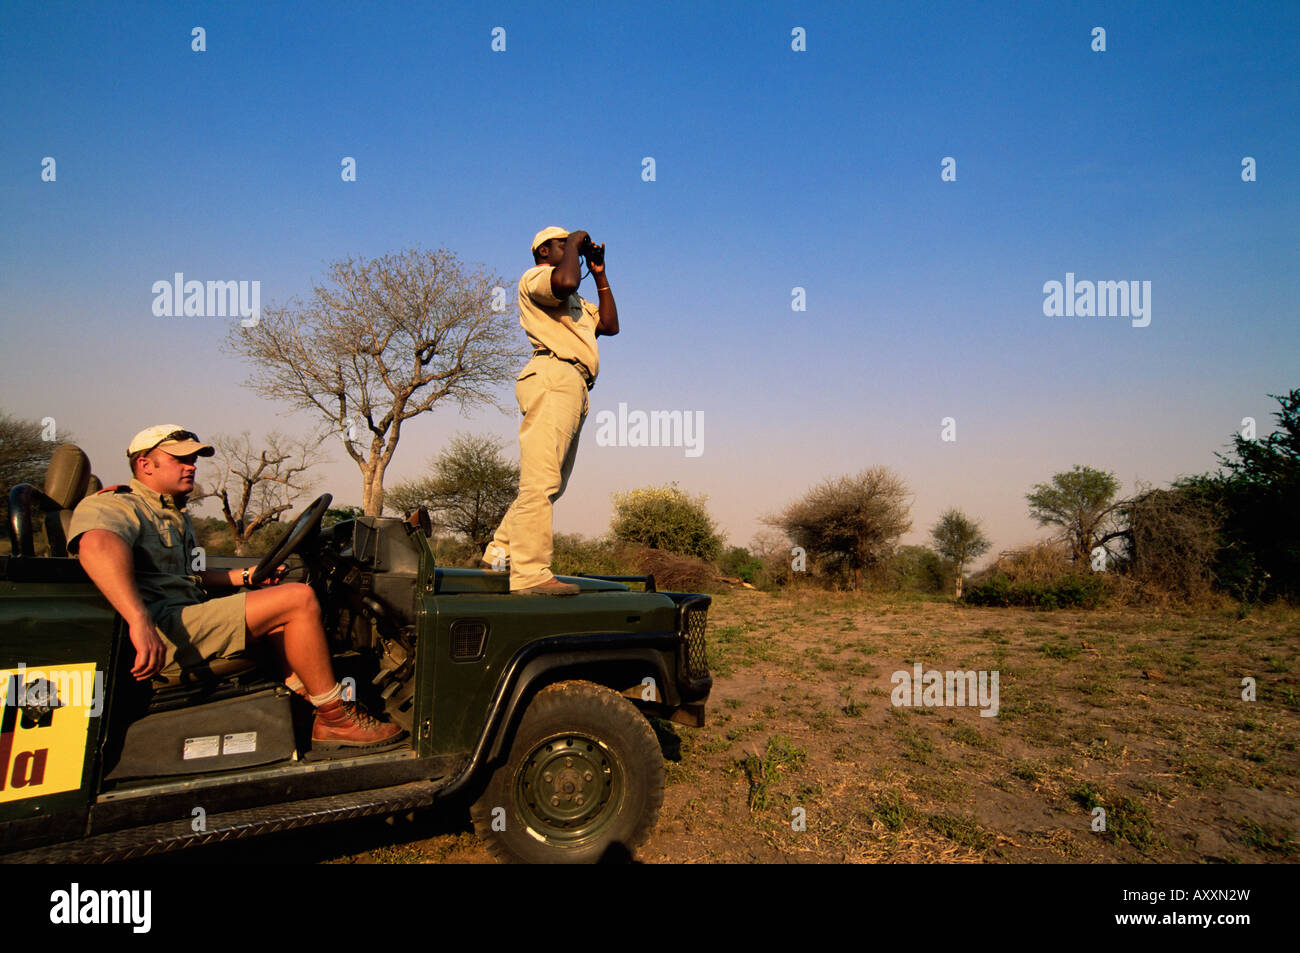 Looking out for wildlife, Mala Mala Game Reserve, Sabi Sand Park, South Africa, Africa - Stock Image